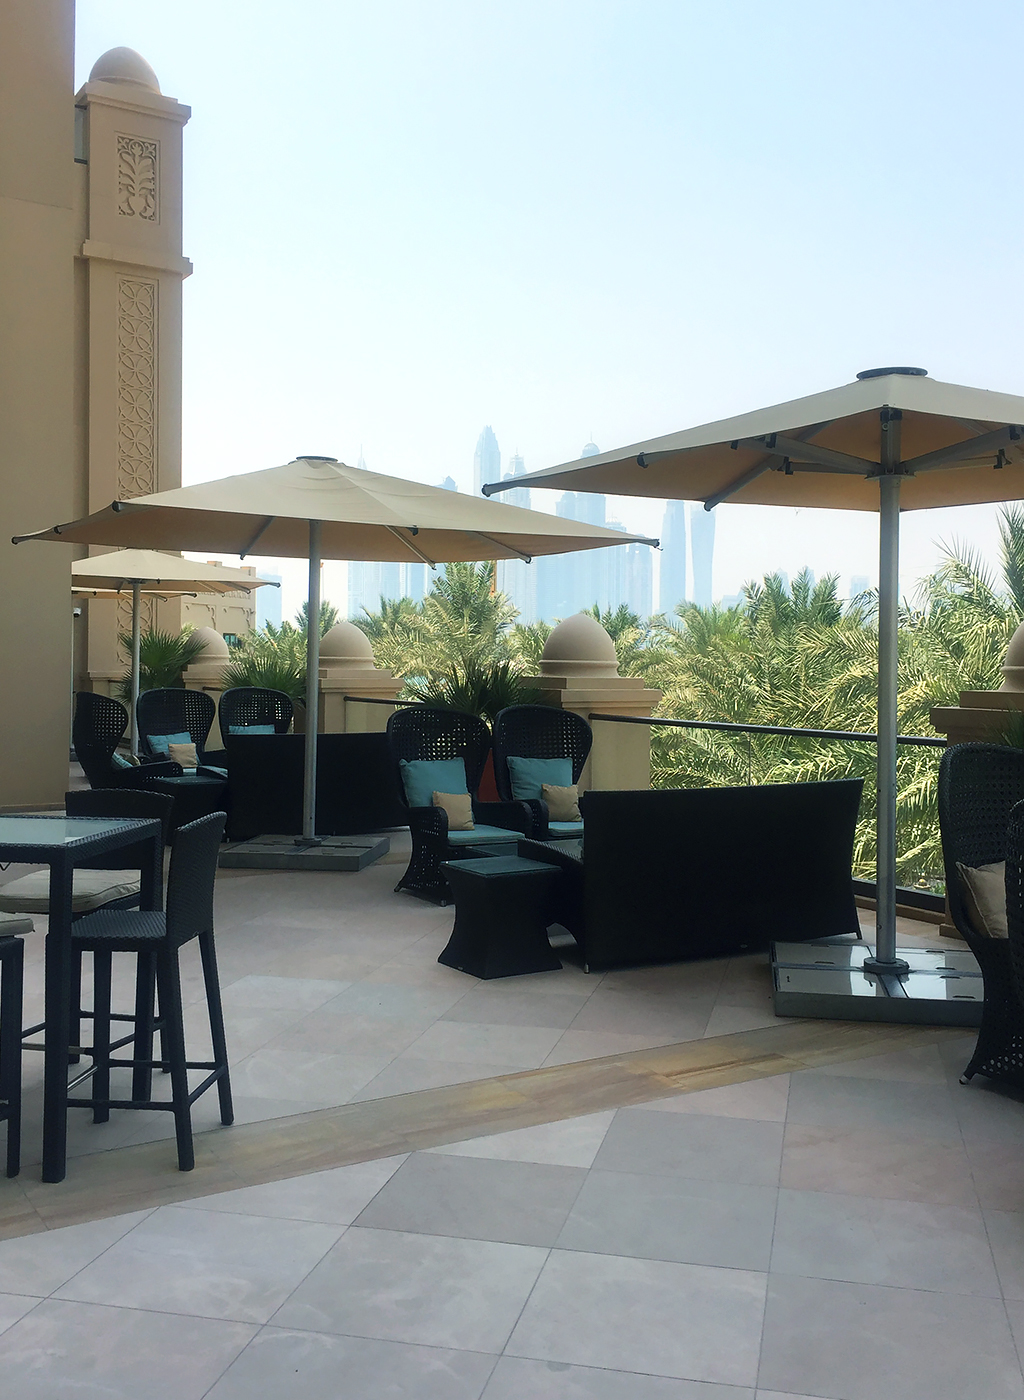 Fairmont The Palm Hotel Dubai Review Terrasse Aussicht Marina Mall